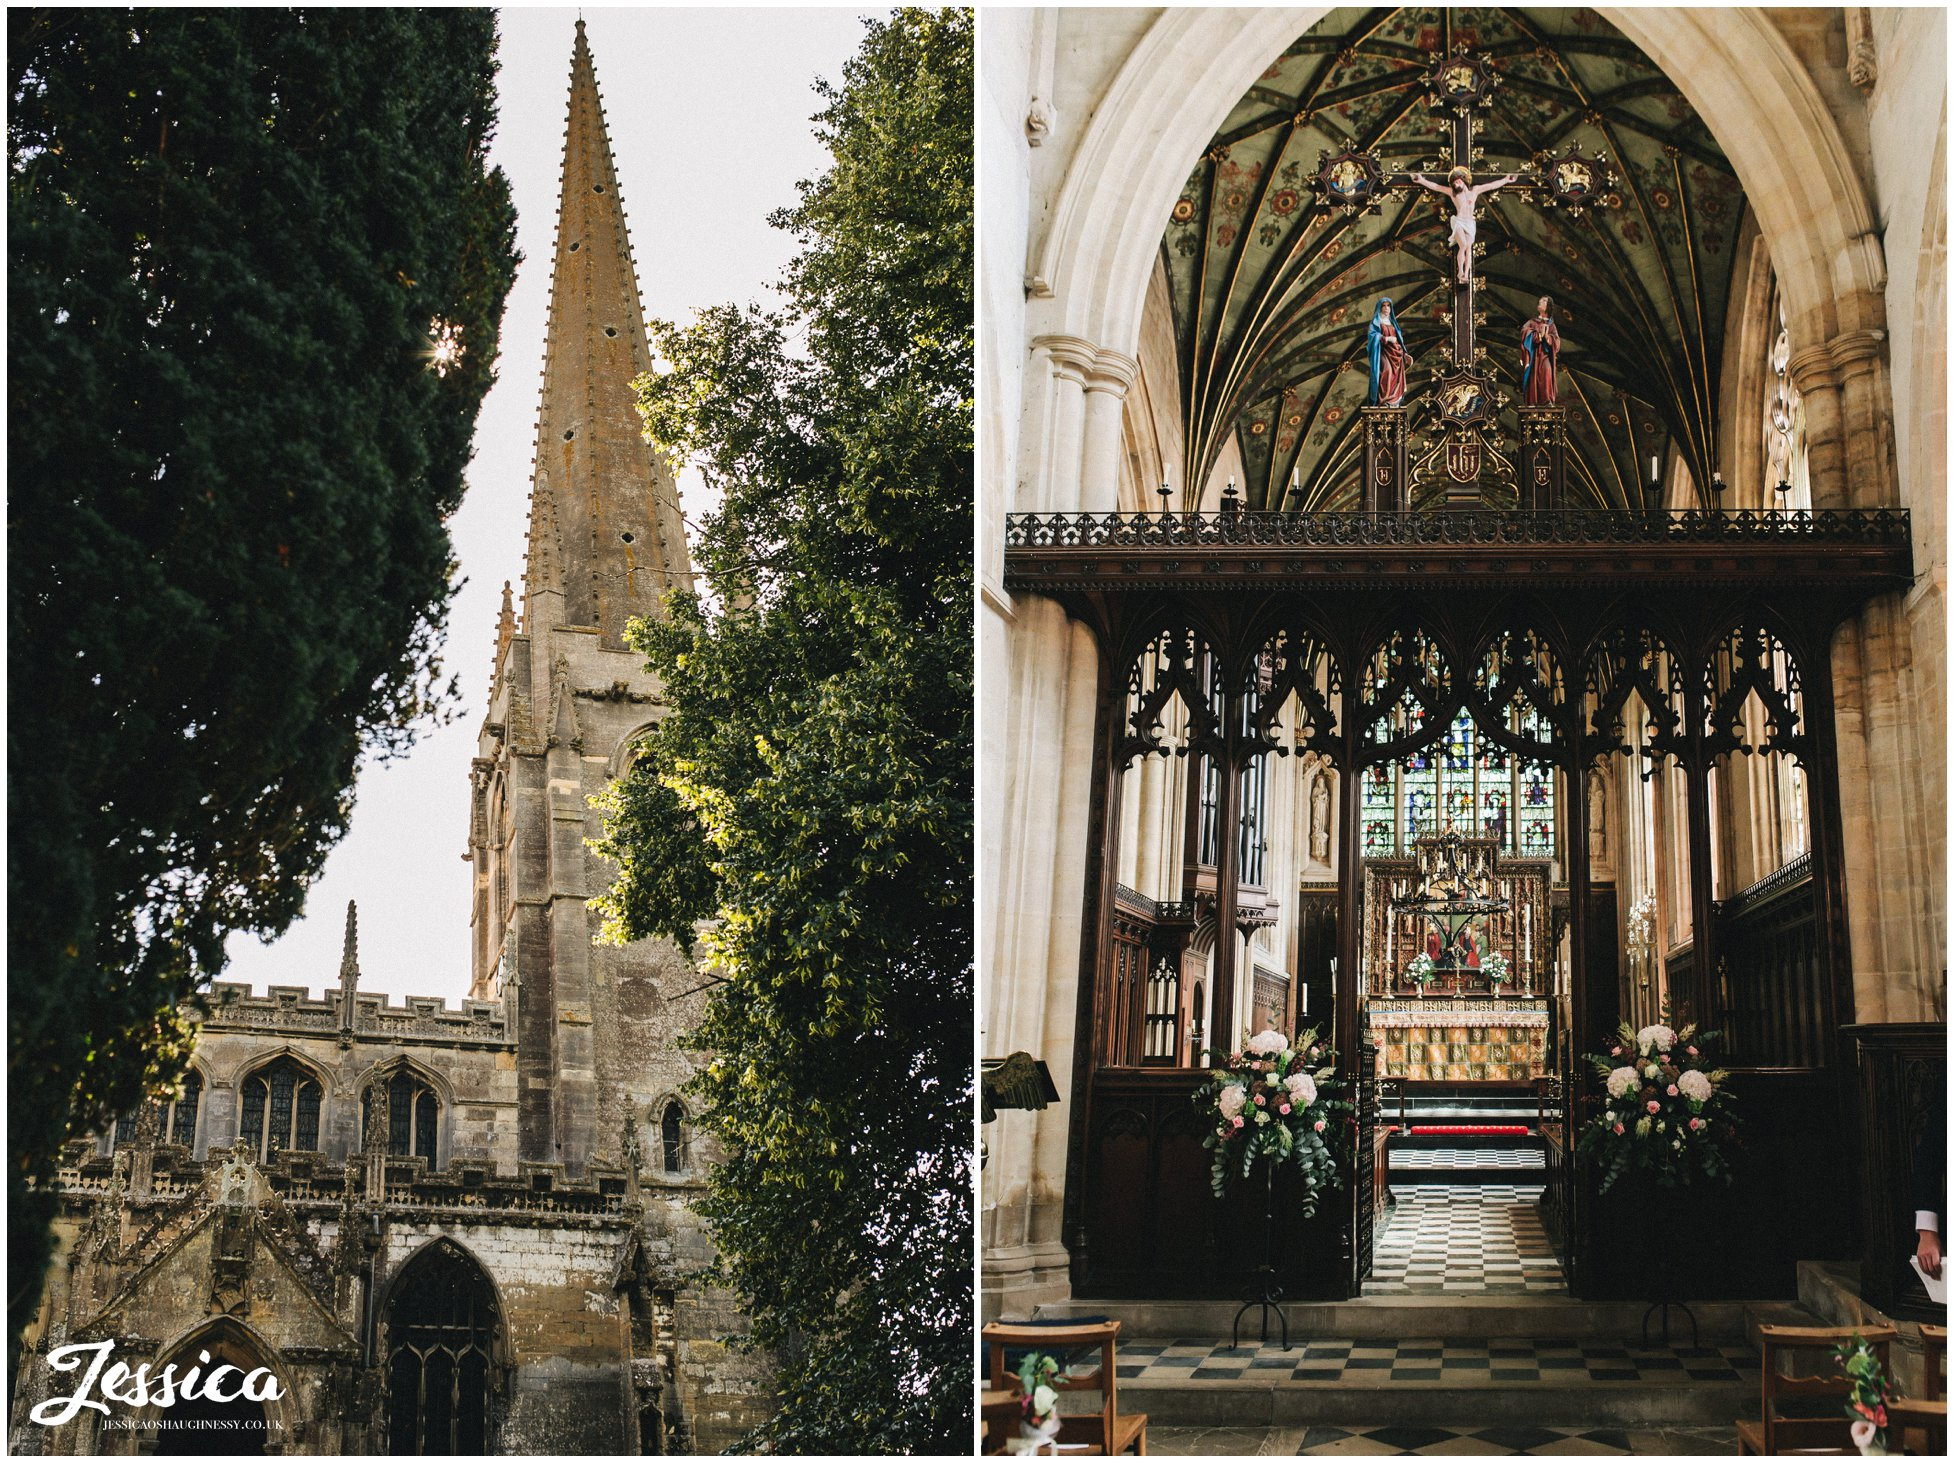 the nottinghamshire church from the outside & inside